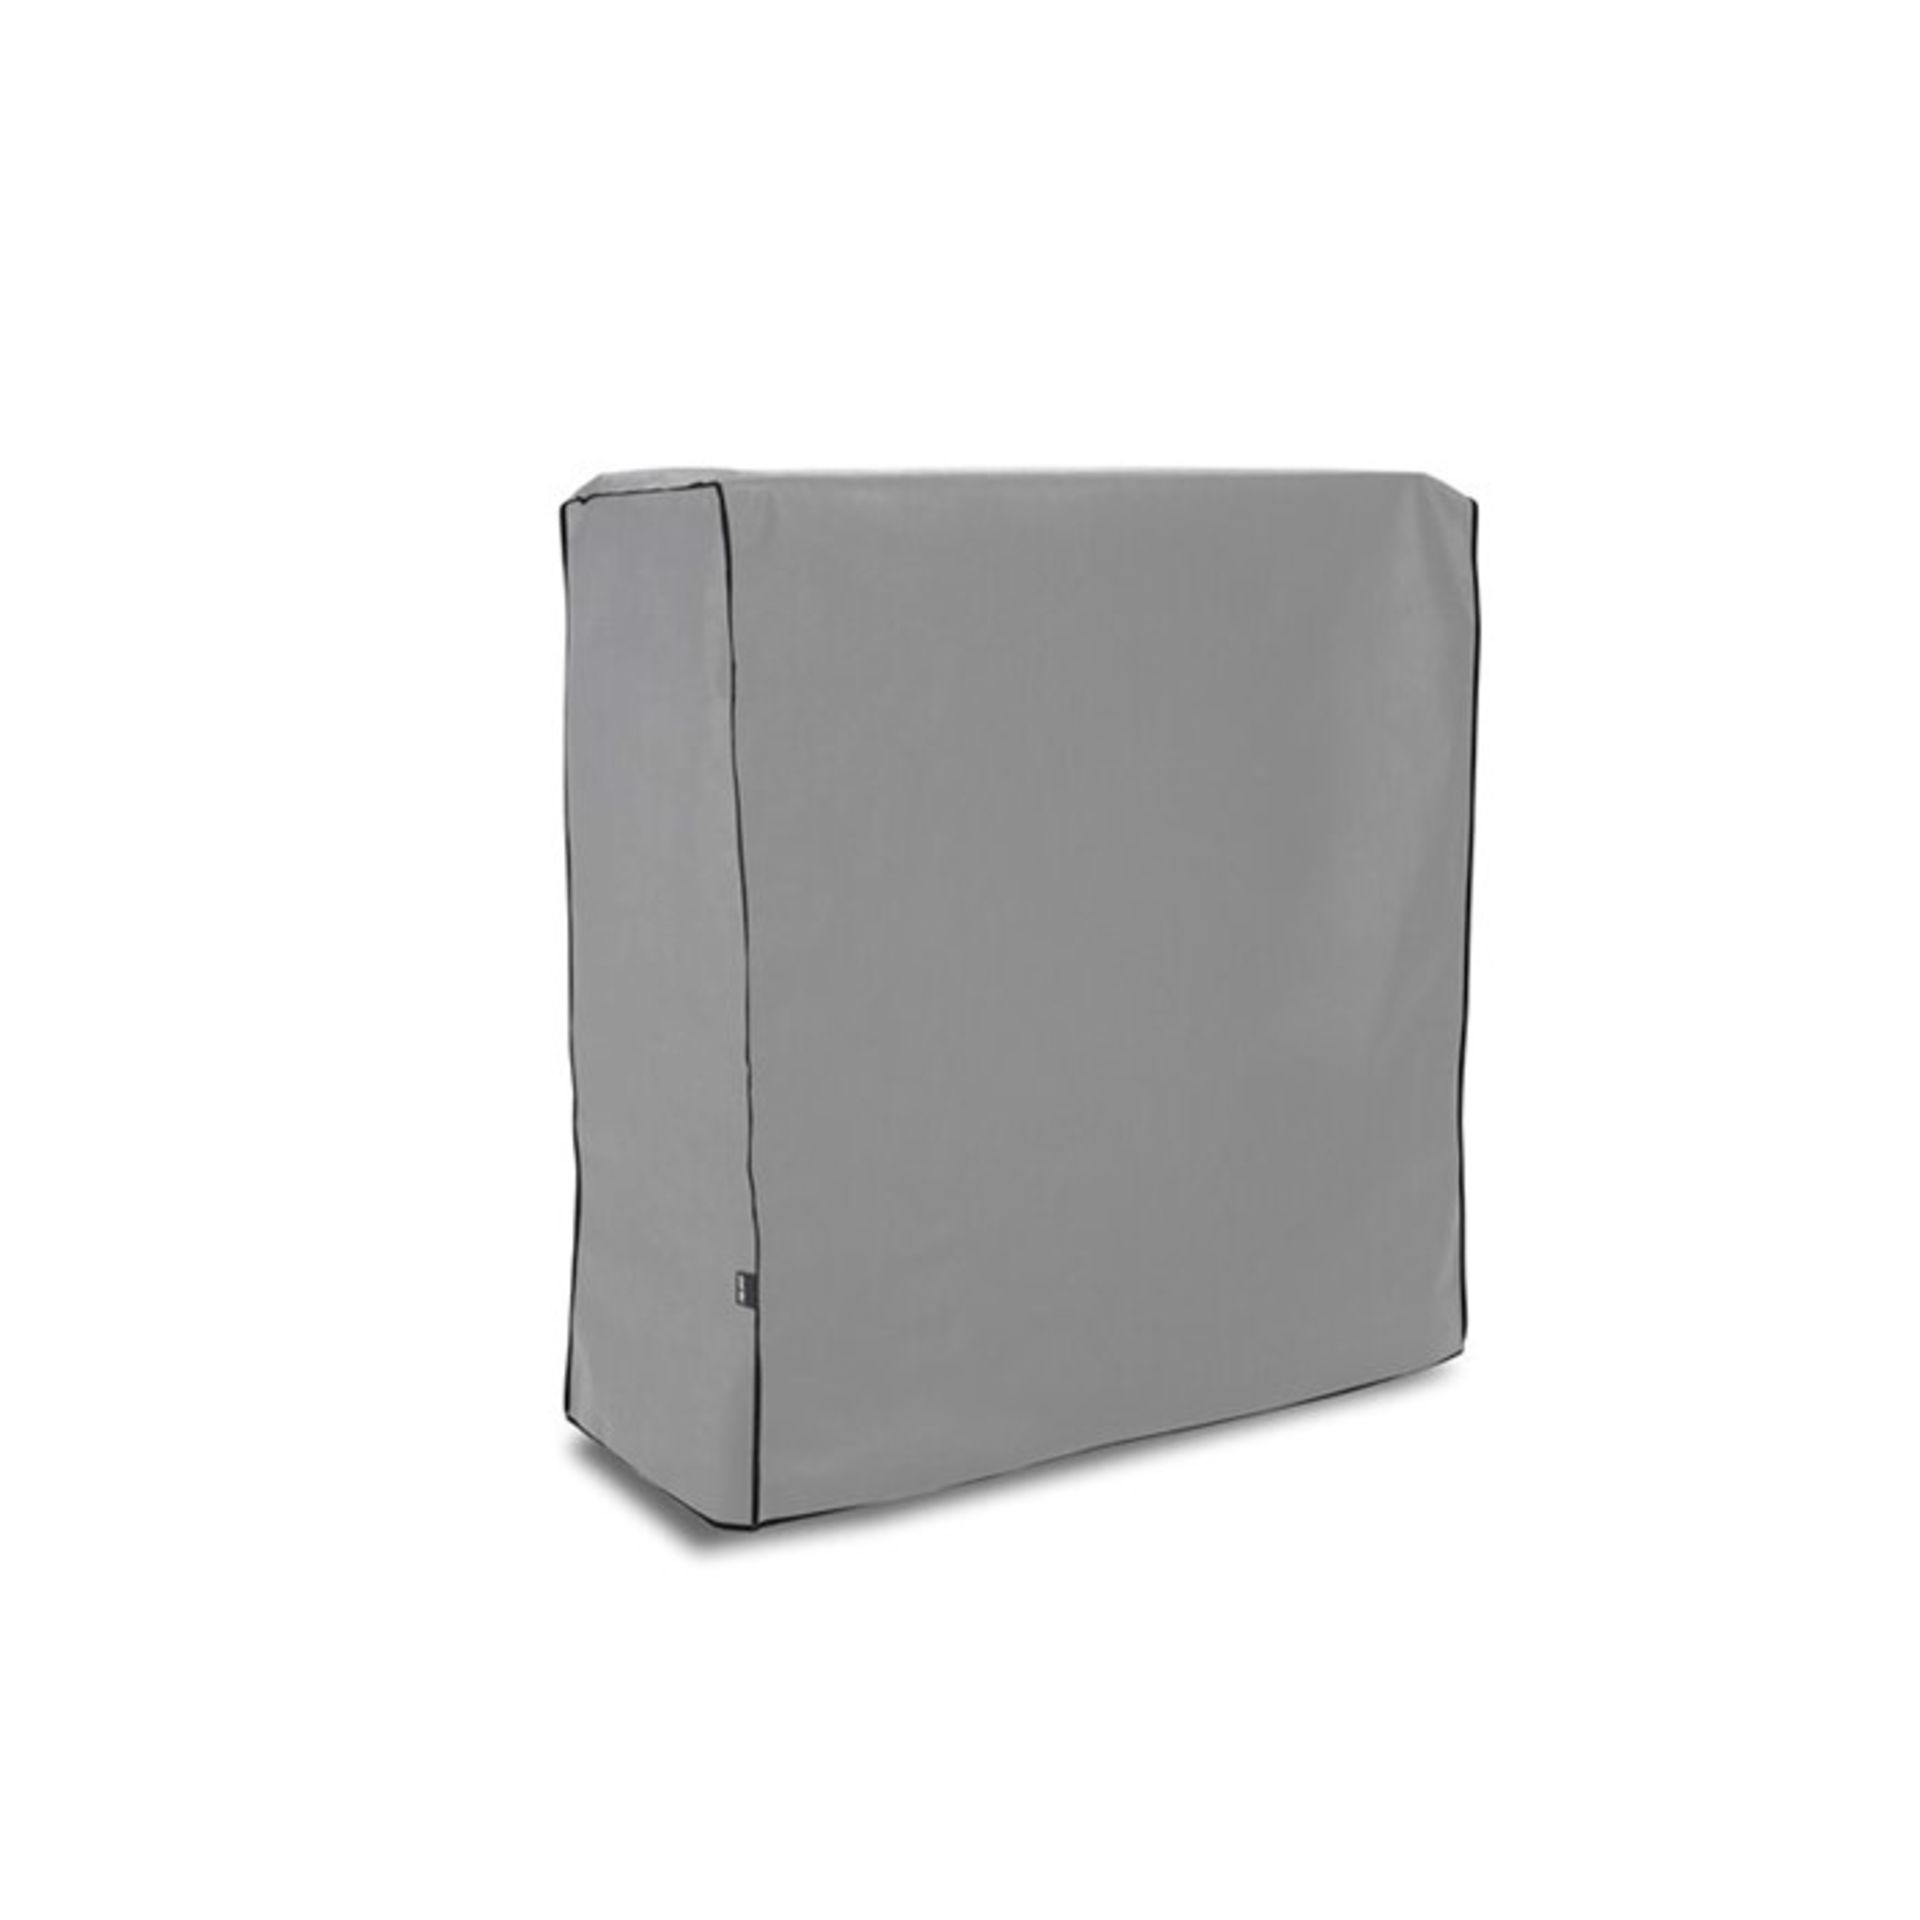 Jay-Be, Storage Cover For Supreme Folding Bed (SINGLE) - RRP £26.99 (JYB1101 - 14147/145) 1C